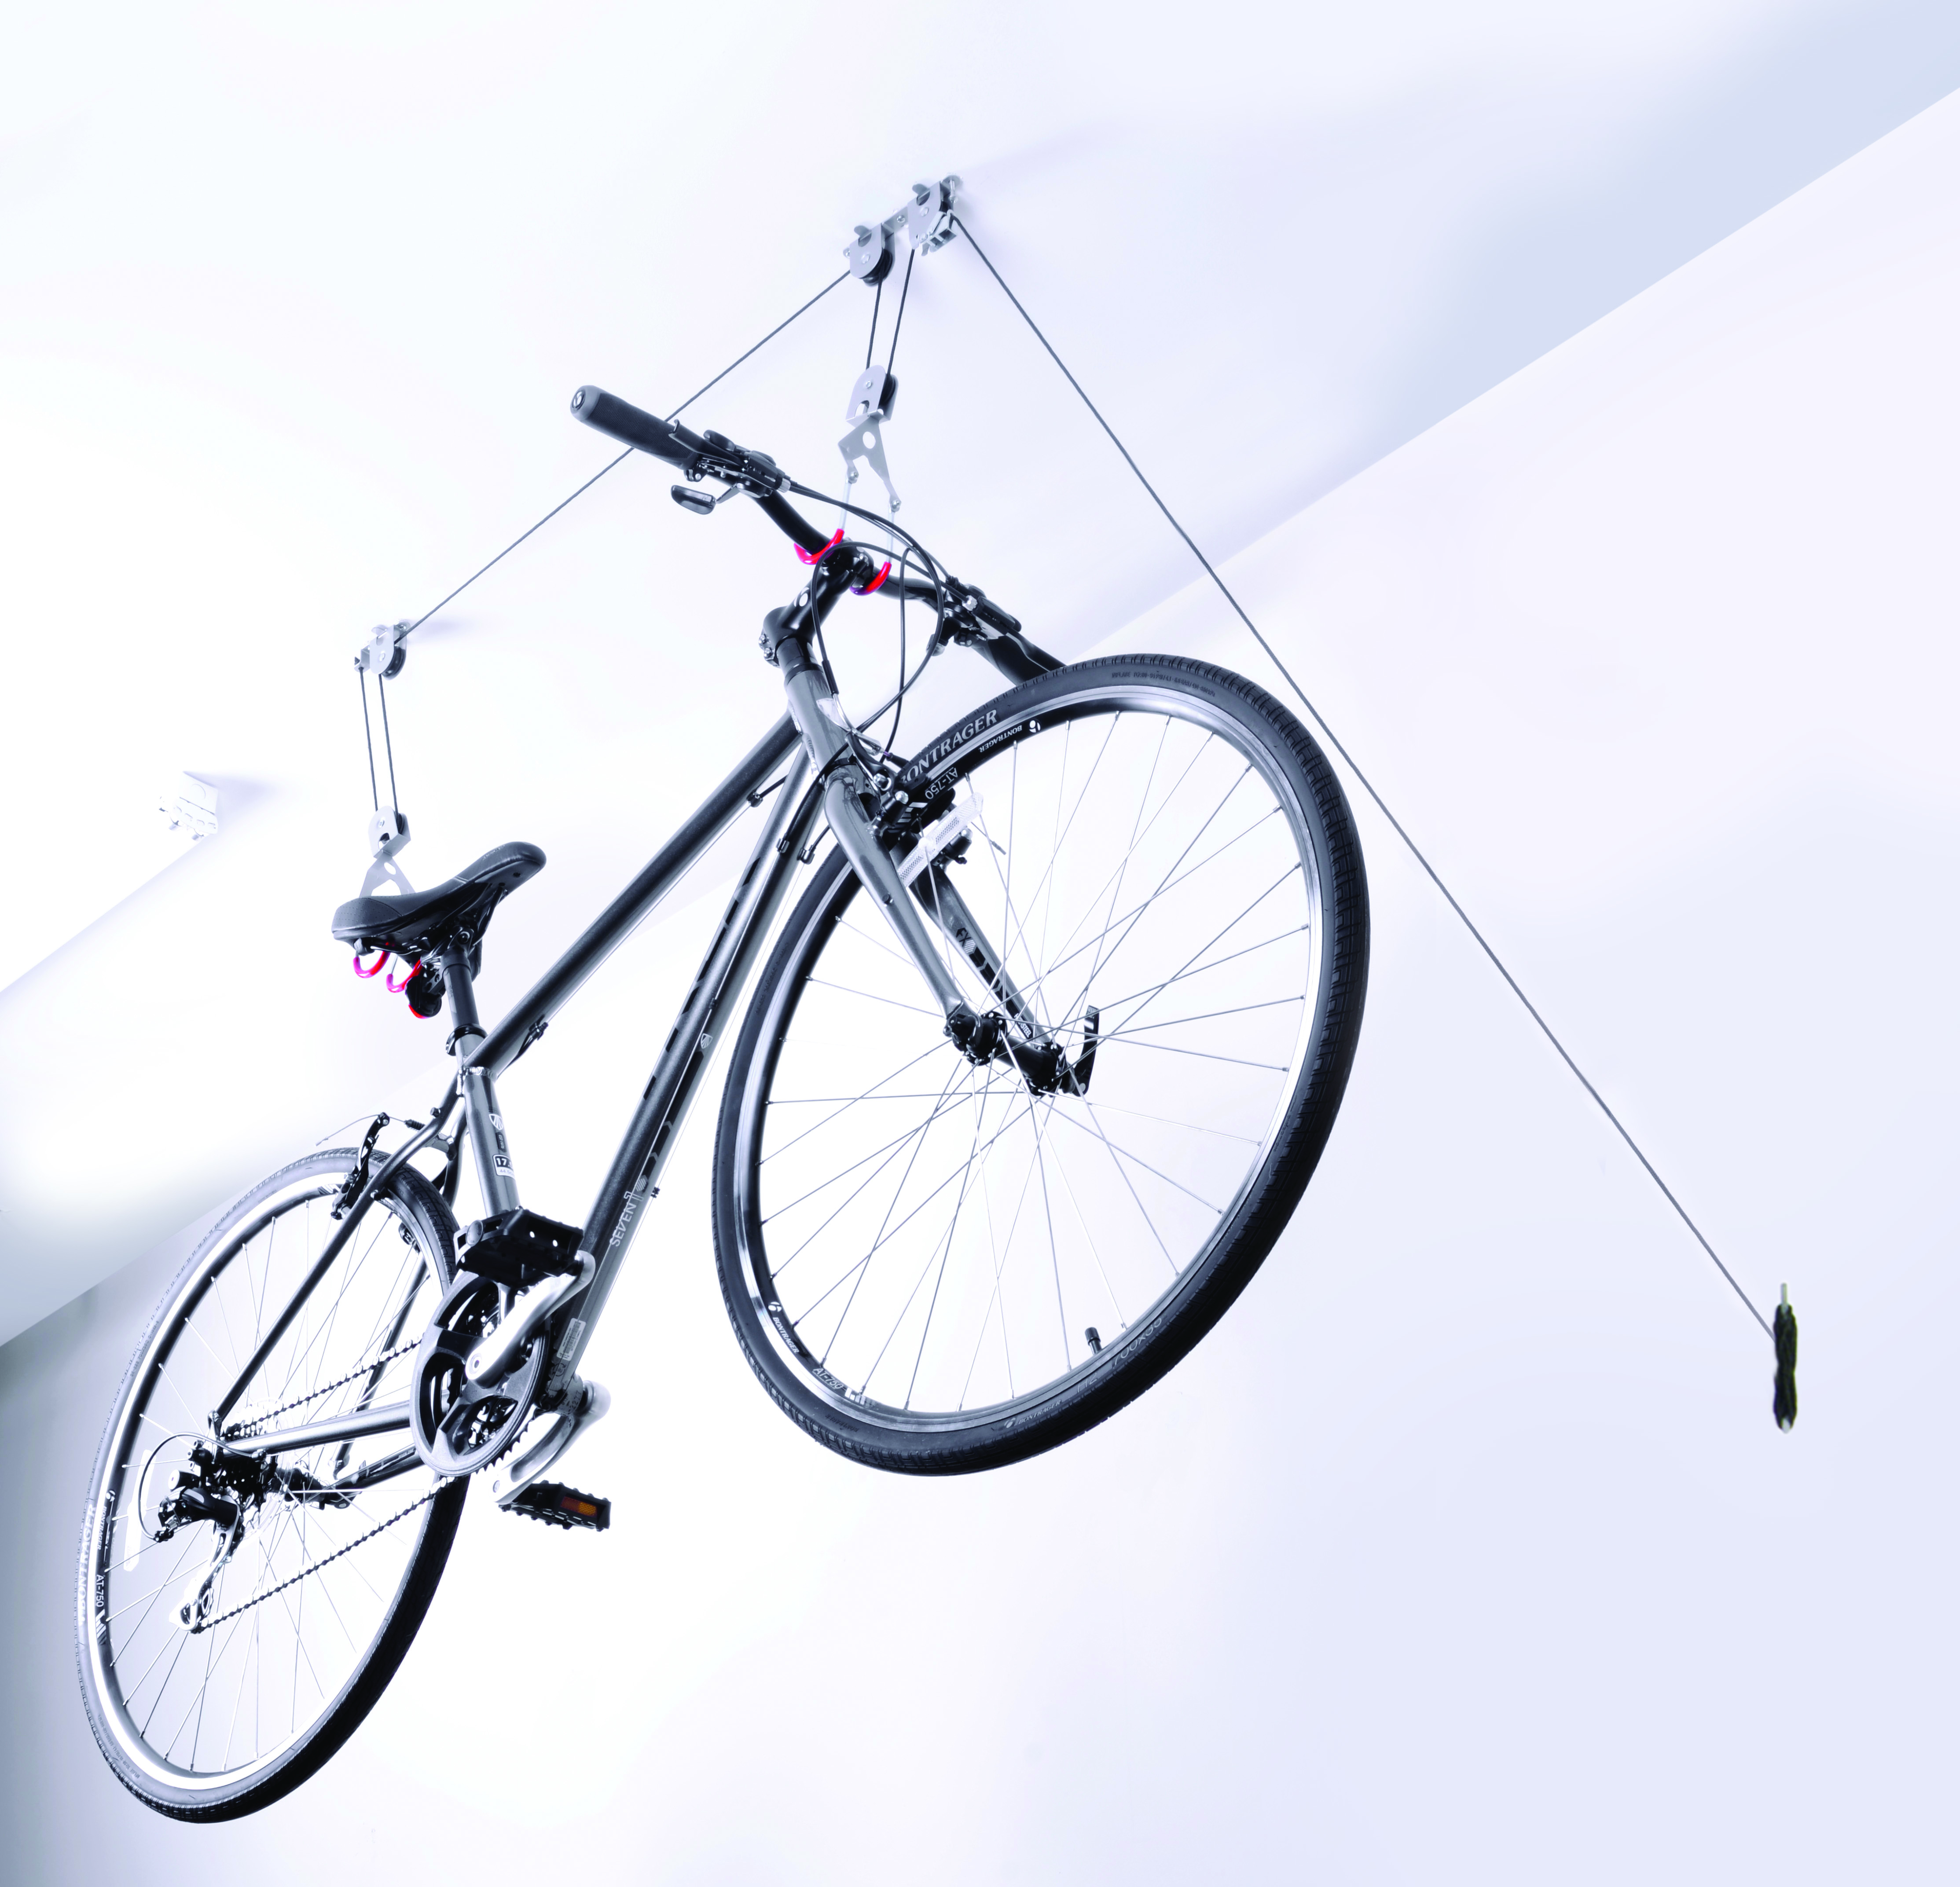 D101 Cycle Bike Pulley Hoist by Delta Cycle